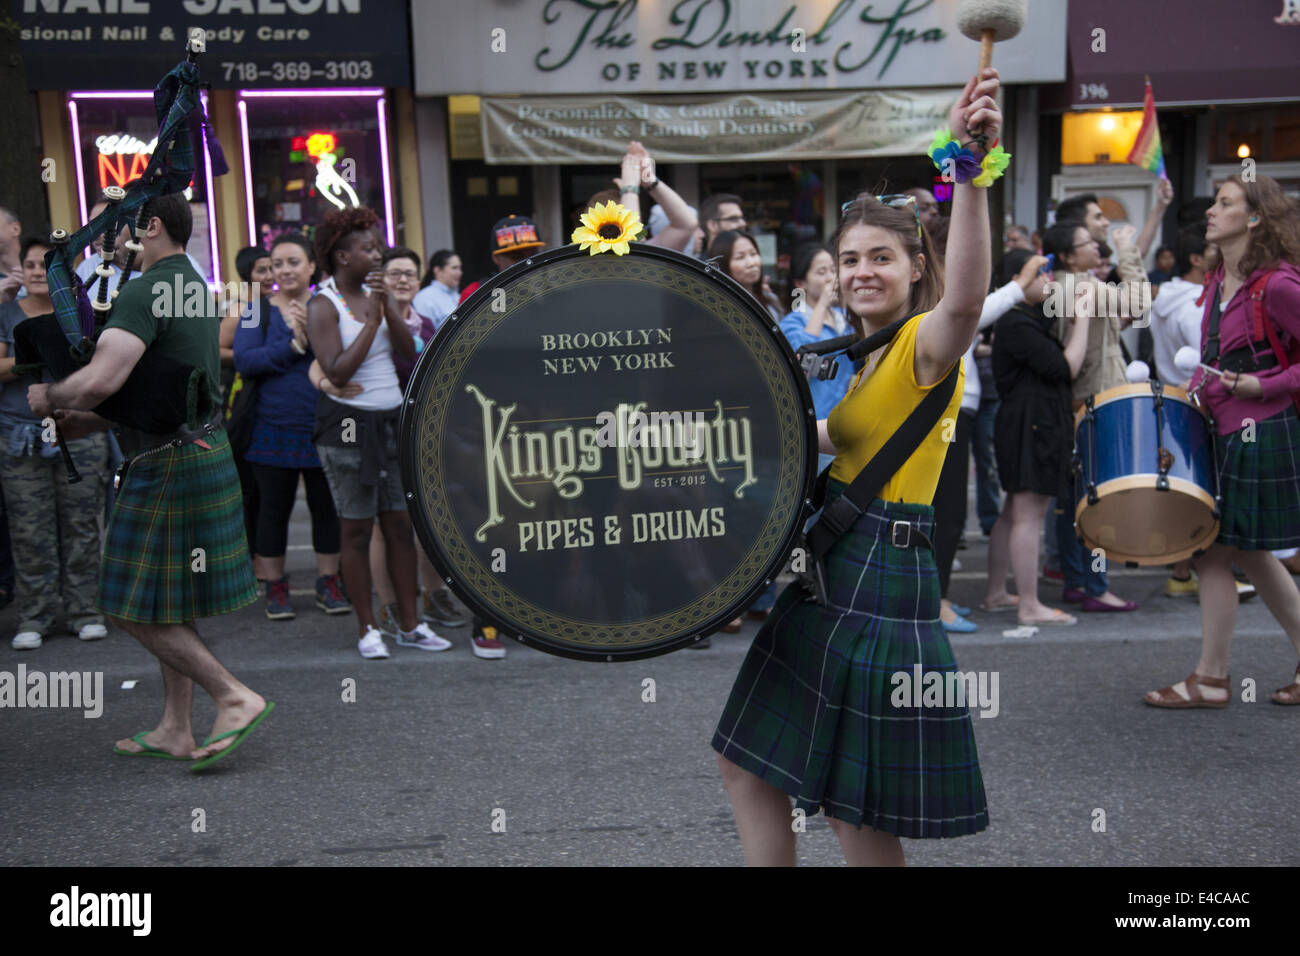 Kings County Pipes and Drums march in the Gay Pride Parade along 5th Ave. in the Park SLope neighborhood, Brooklyn, Stock Photo